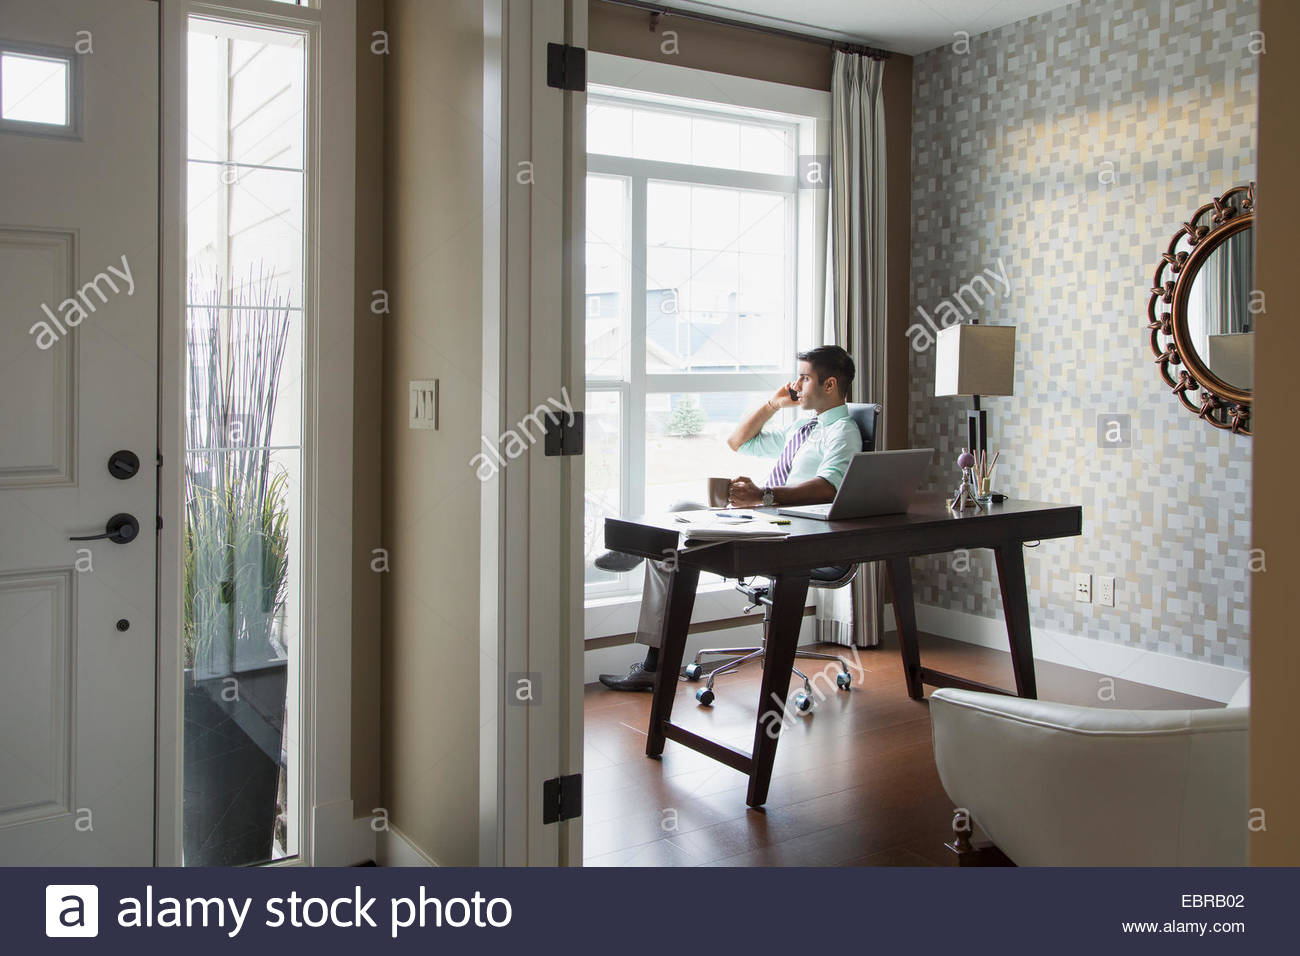 Man talking on cell phone in home office - Stock Image